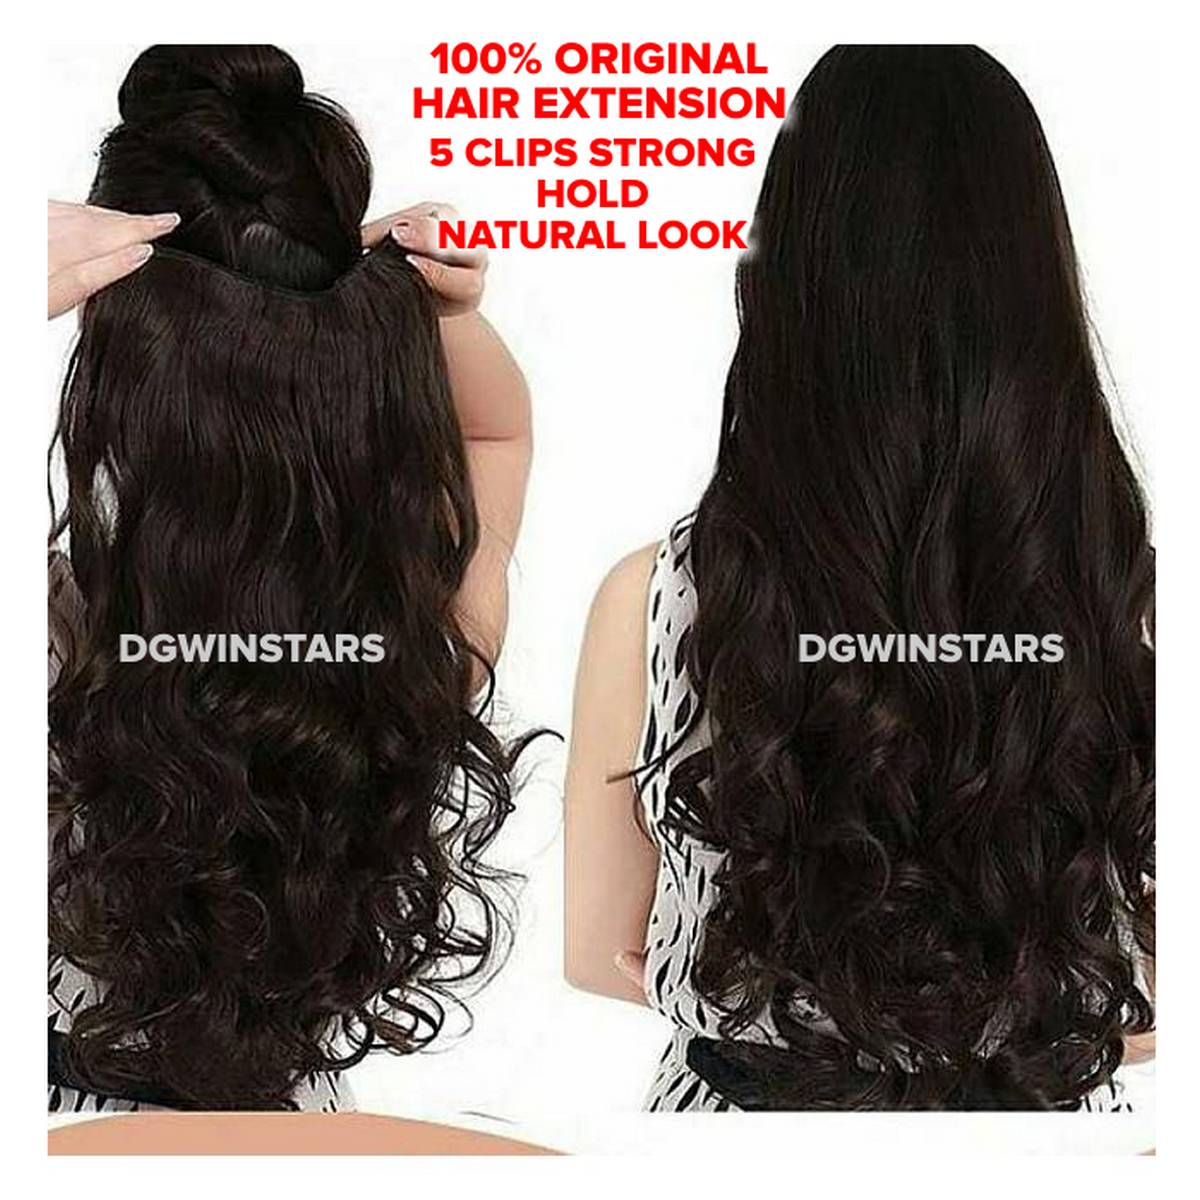 Dark Brown Hair Extension Length 30 Inches With 5 Clips Strongly Attached No Hair Fall Washable Reuseable - Black Makes hair look gorgeous Easy to use Makes hair look trendy